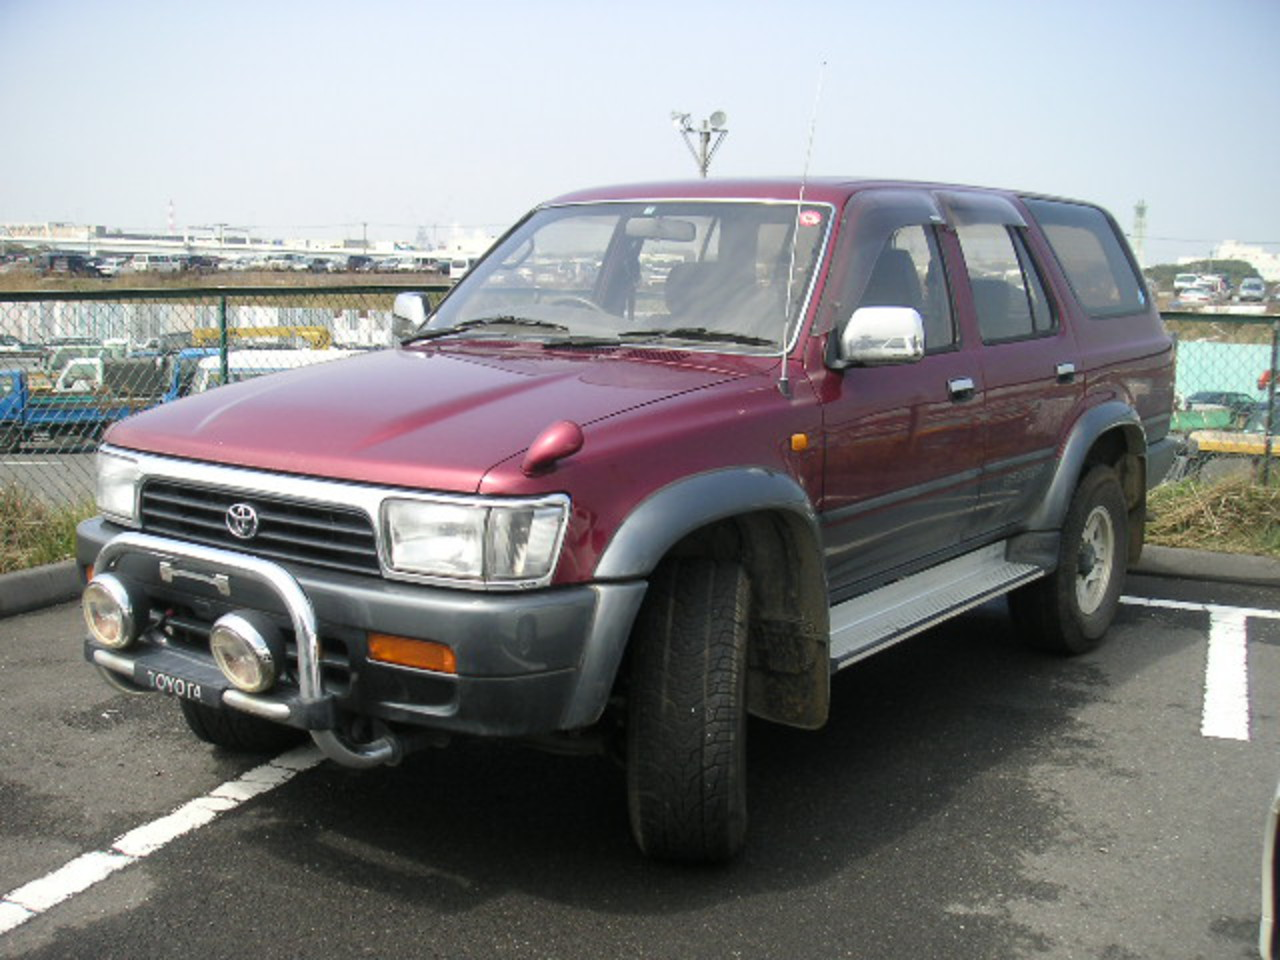 Toyota Safari Snorkels - ARB - 4 wheel parts